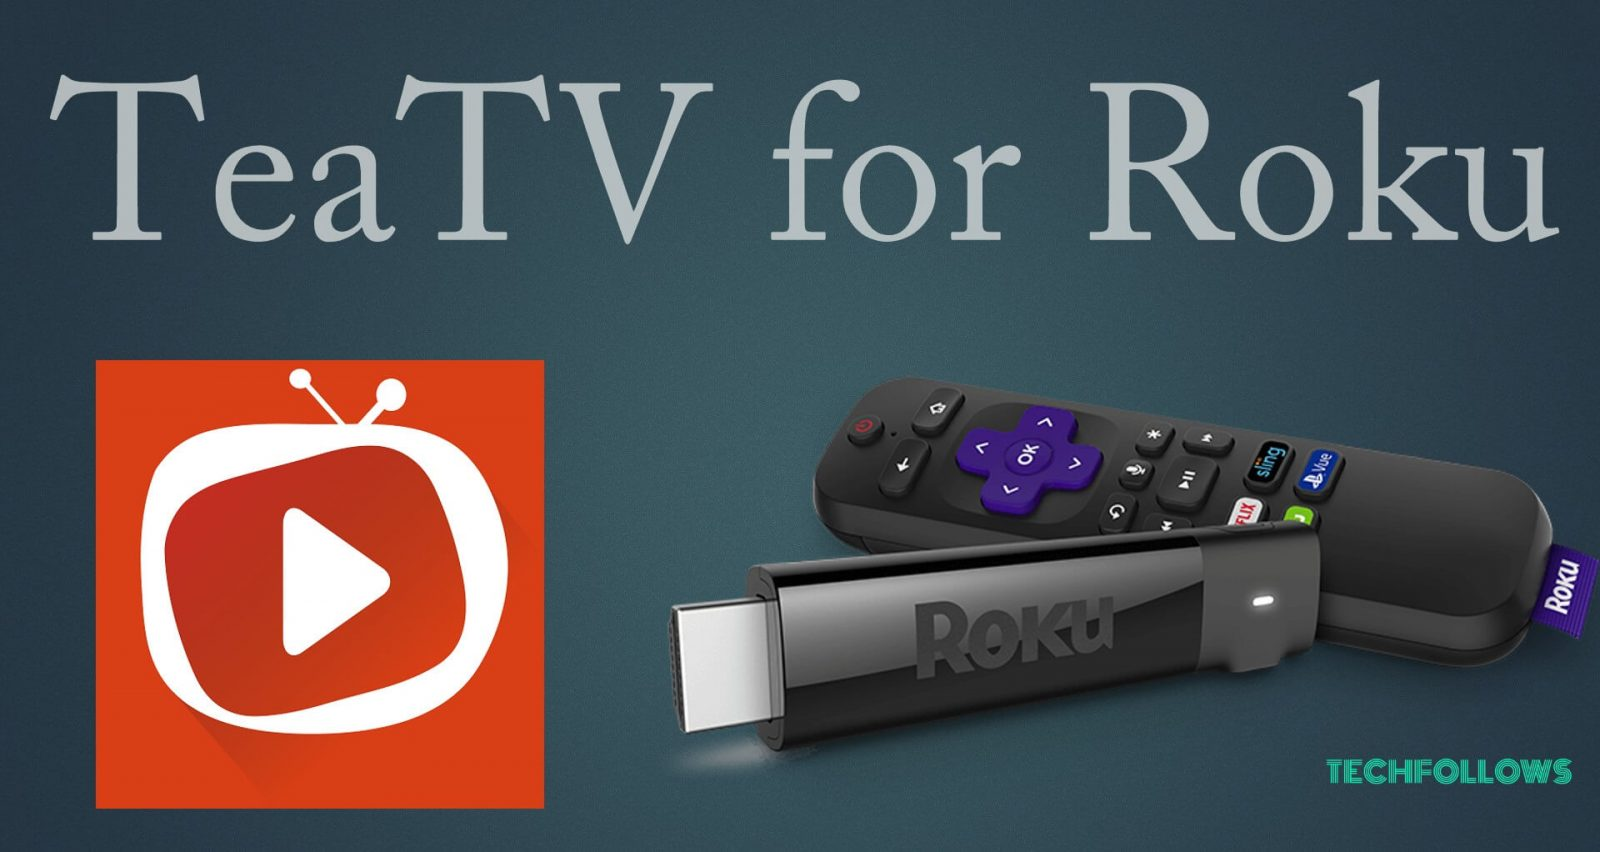 How to Stream TeaTV on Roku? [Complete Guide] - Tech Follows